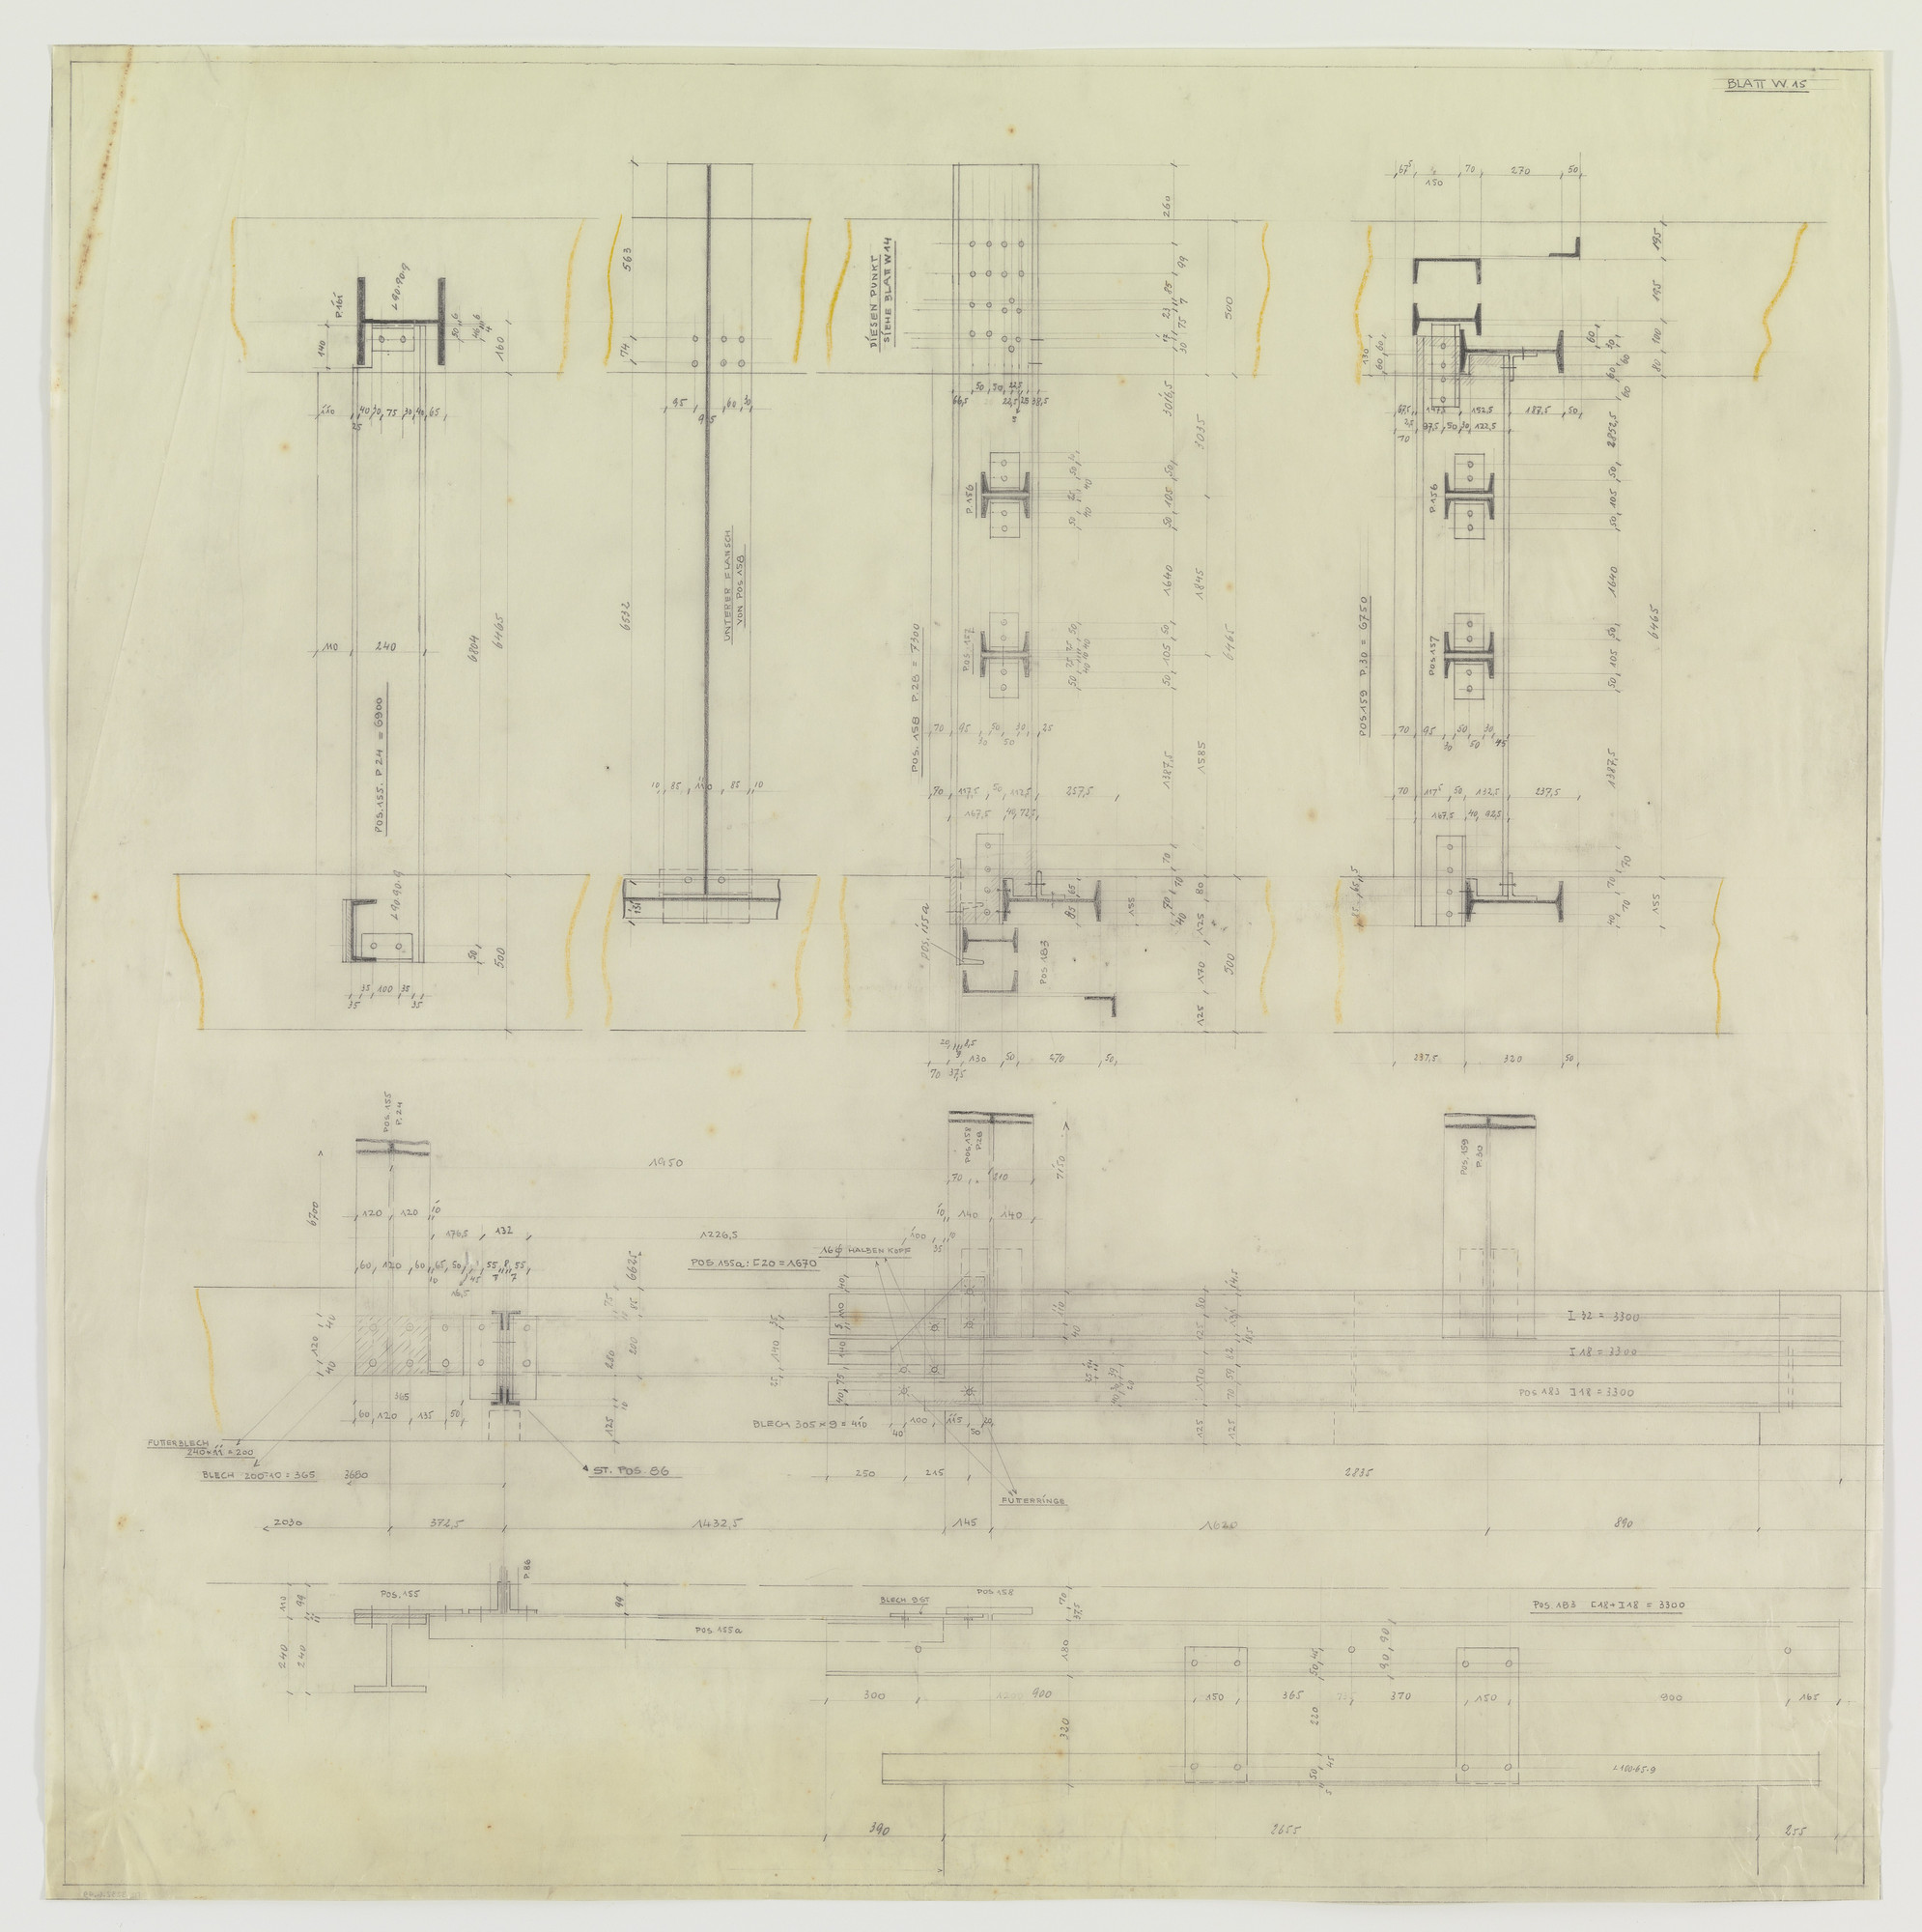 Ludwig Mies van der Rohe. Hermann Lange House, Krefeld, Germany (Framing system. Joining detail sections.). c.1927-1930 | MoMA